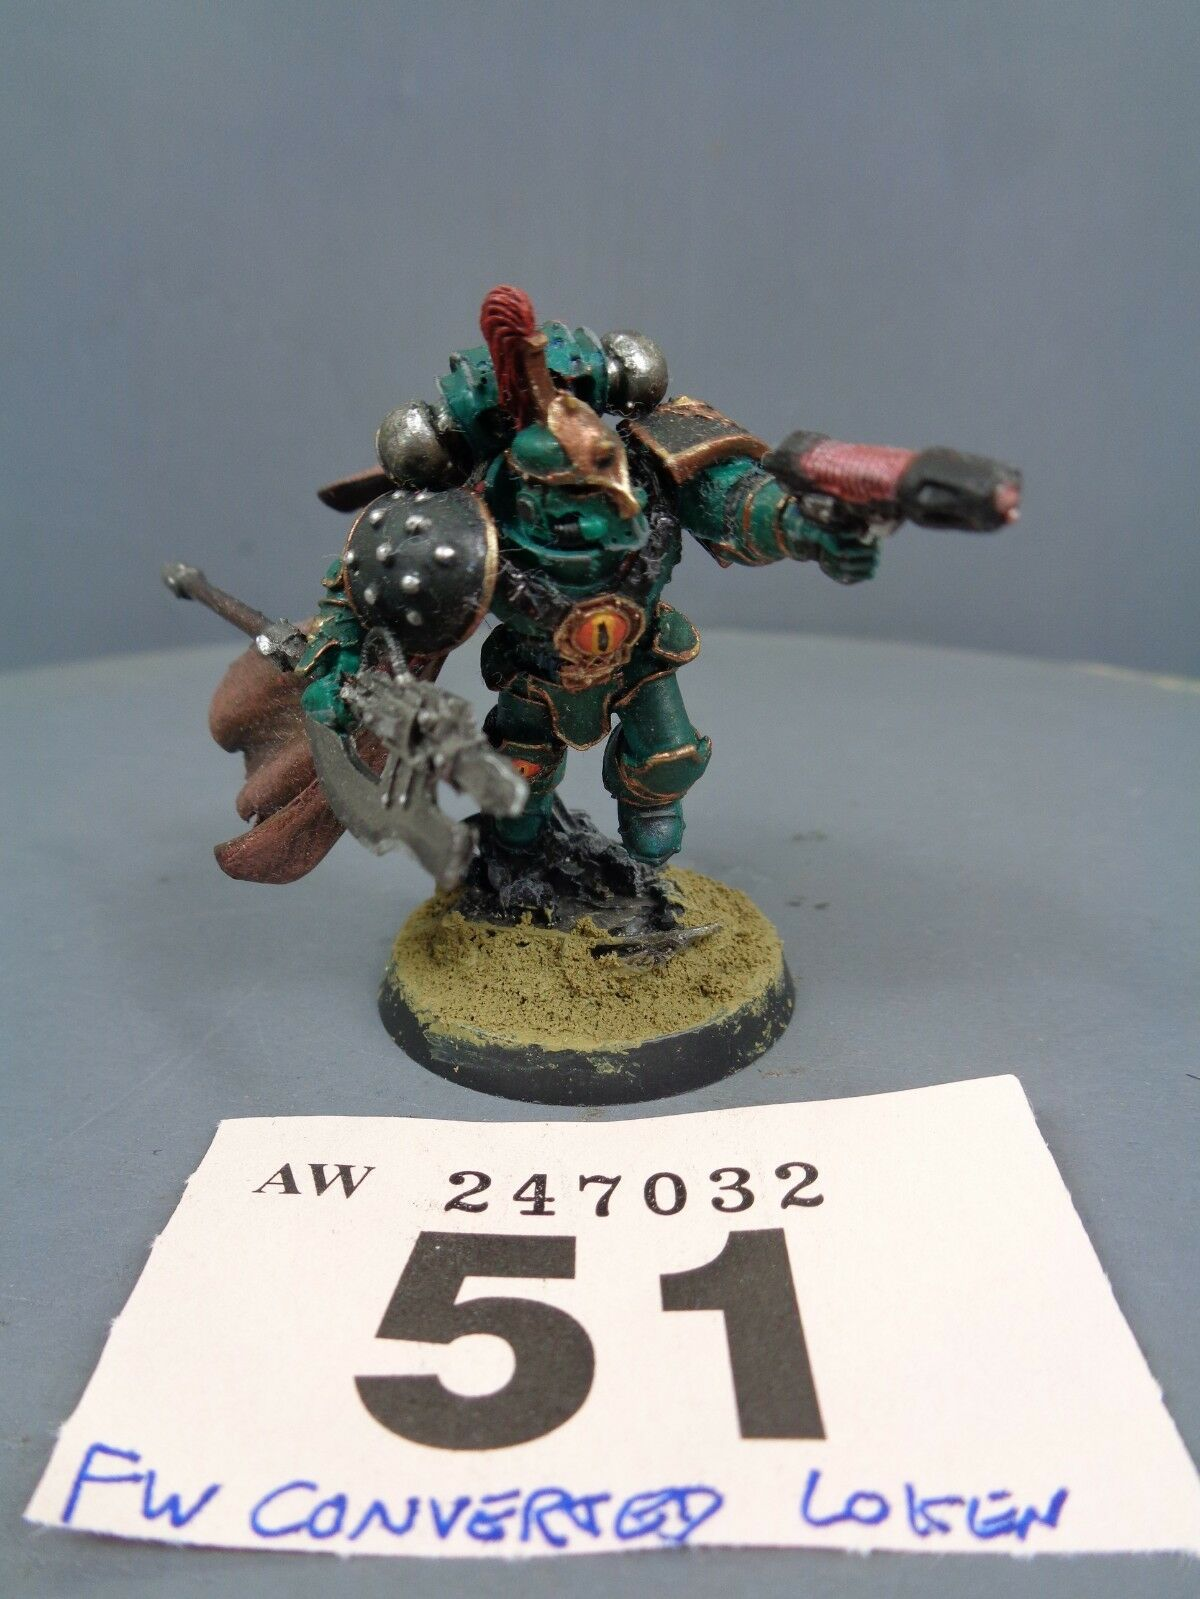 Warhammer Space Marines Forge World Sons of Horus Commander Congreened Loken 51